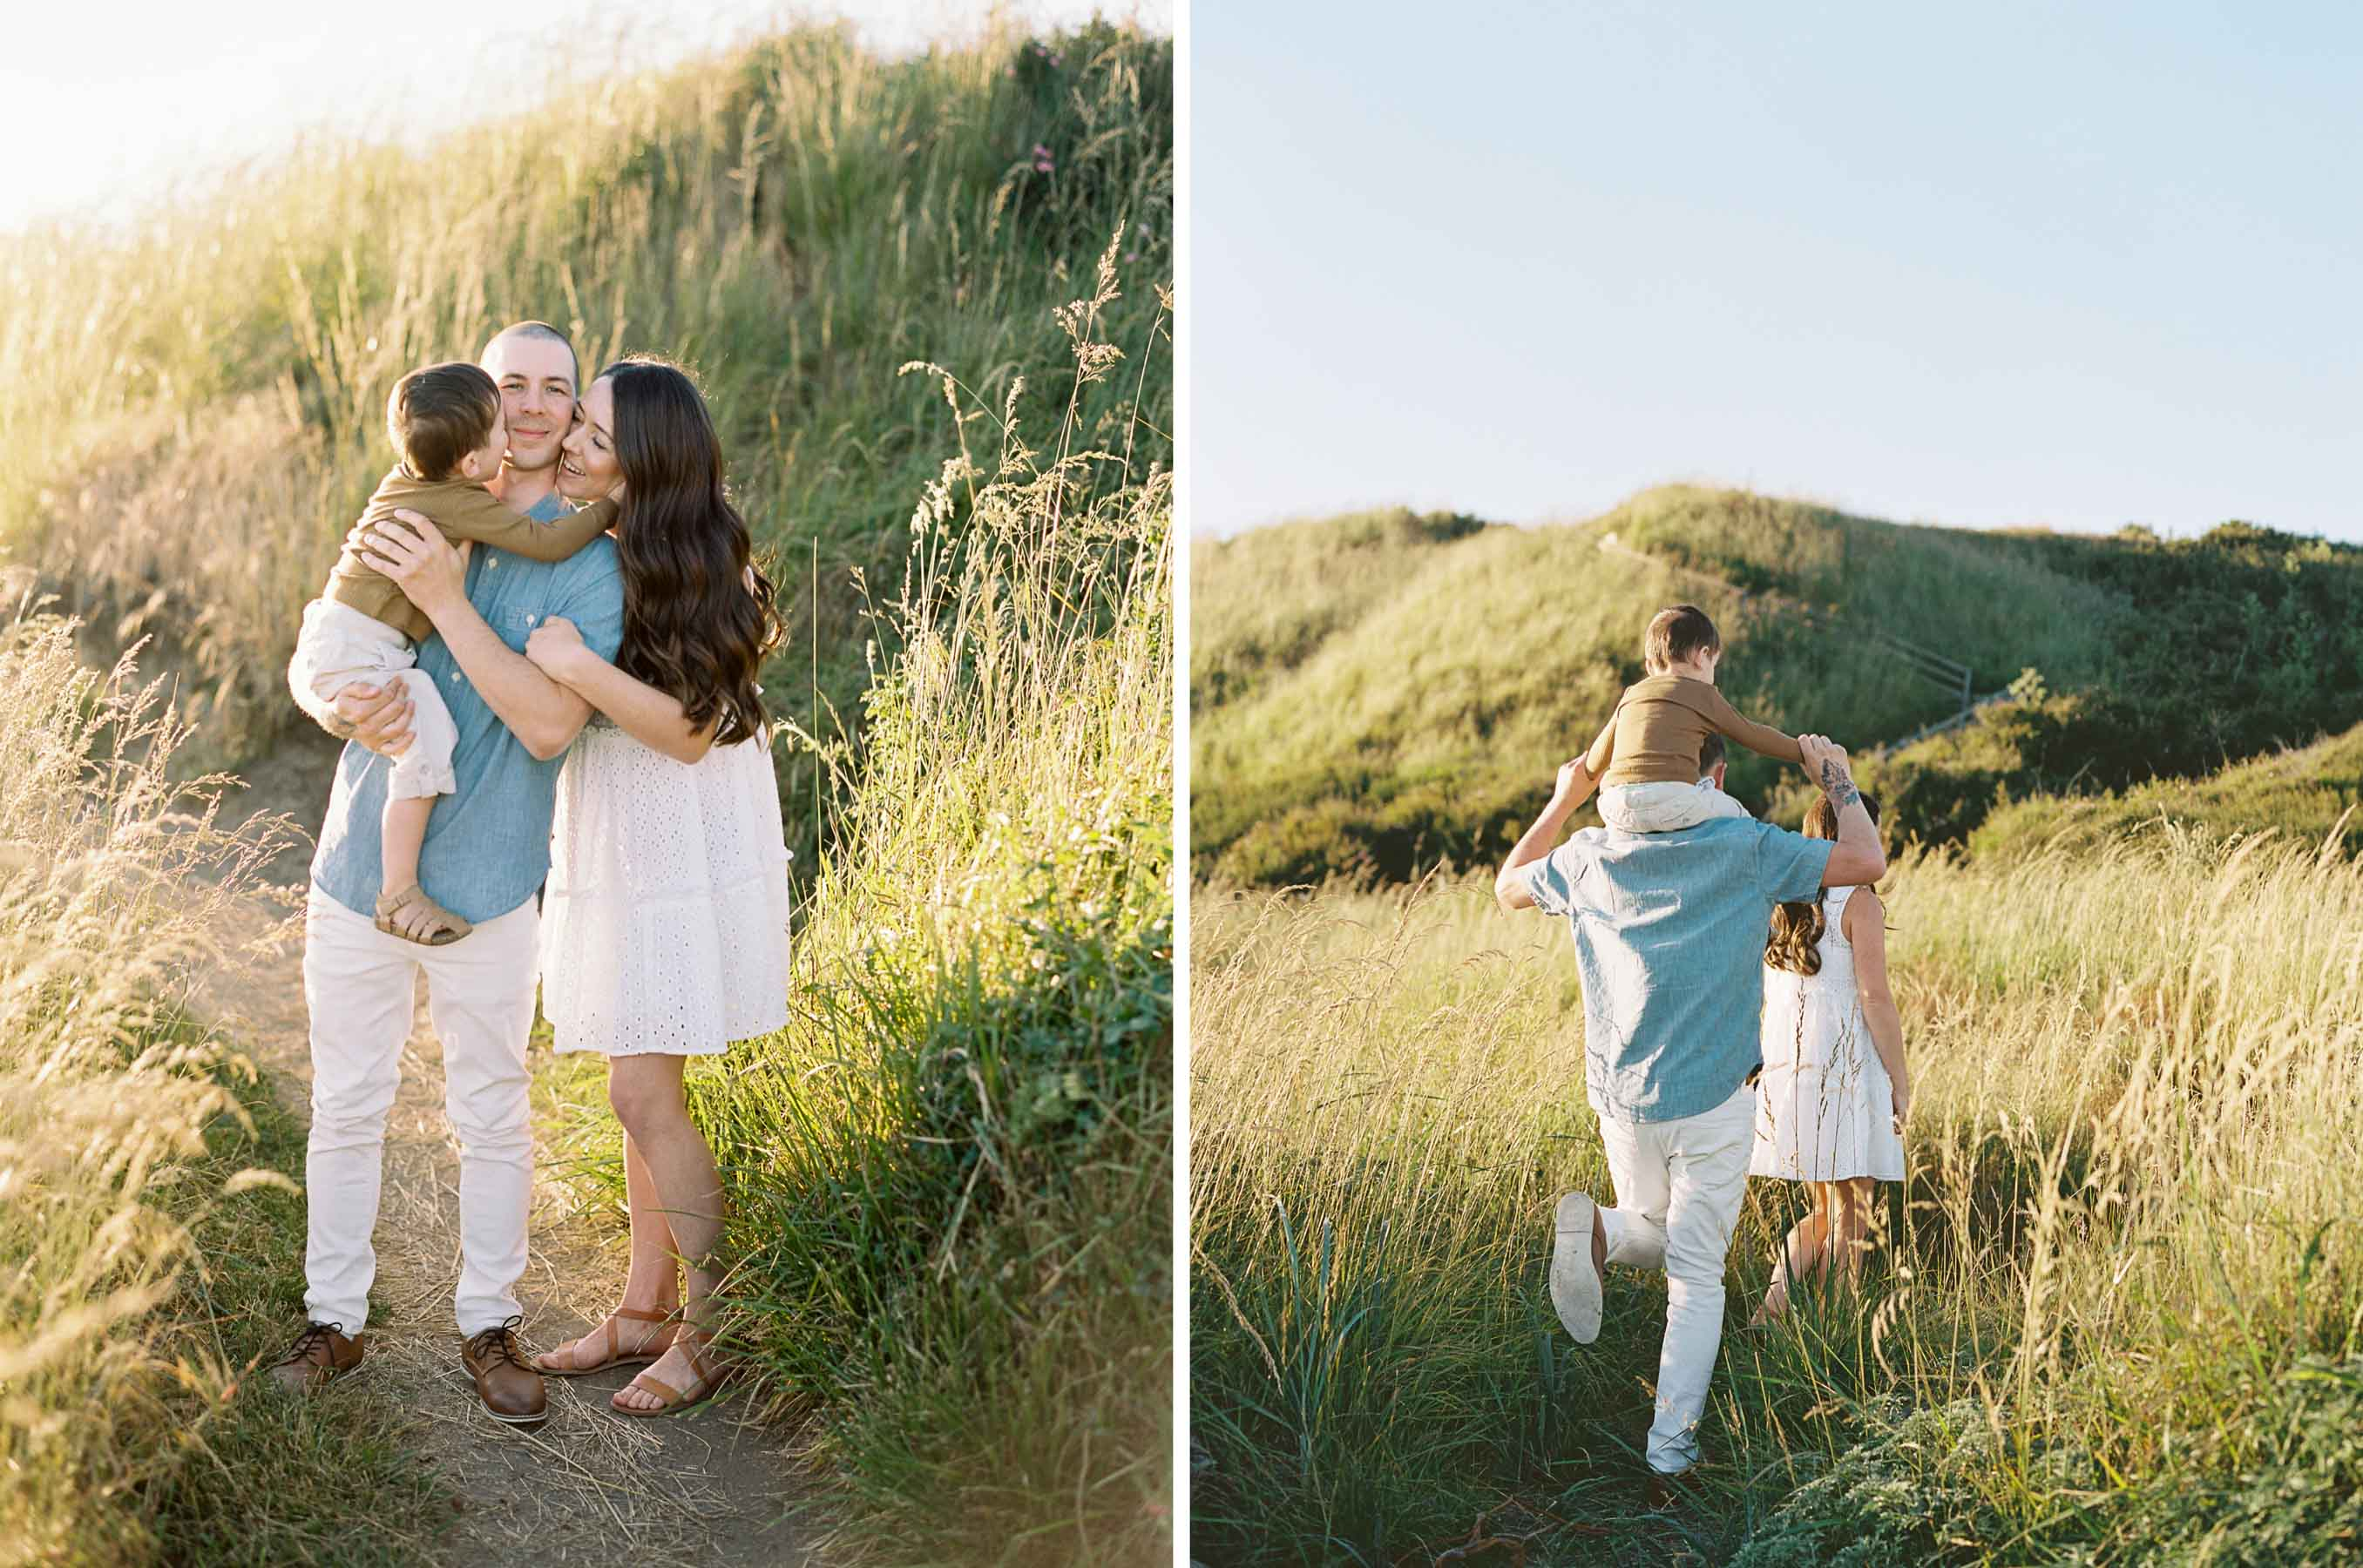 Sweet family portraits captured on film by Seattle lifestyle photographer Anna Peters